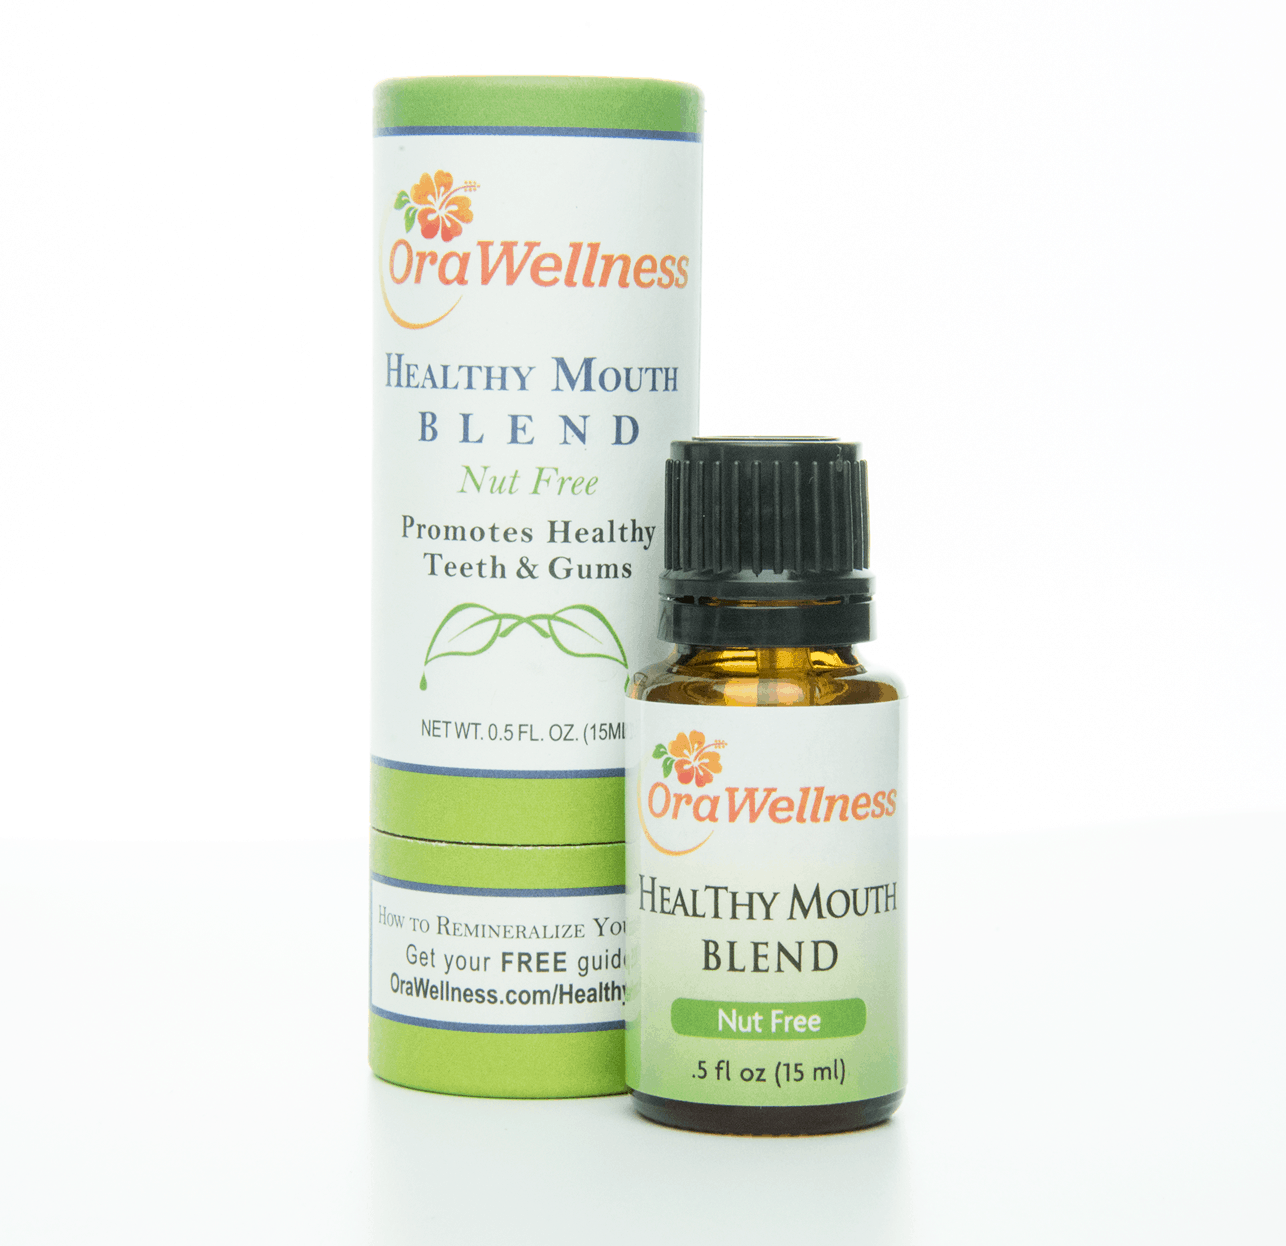 orawellness healthy mouth blend